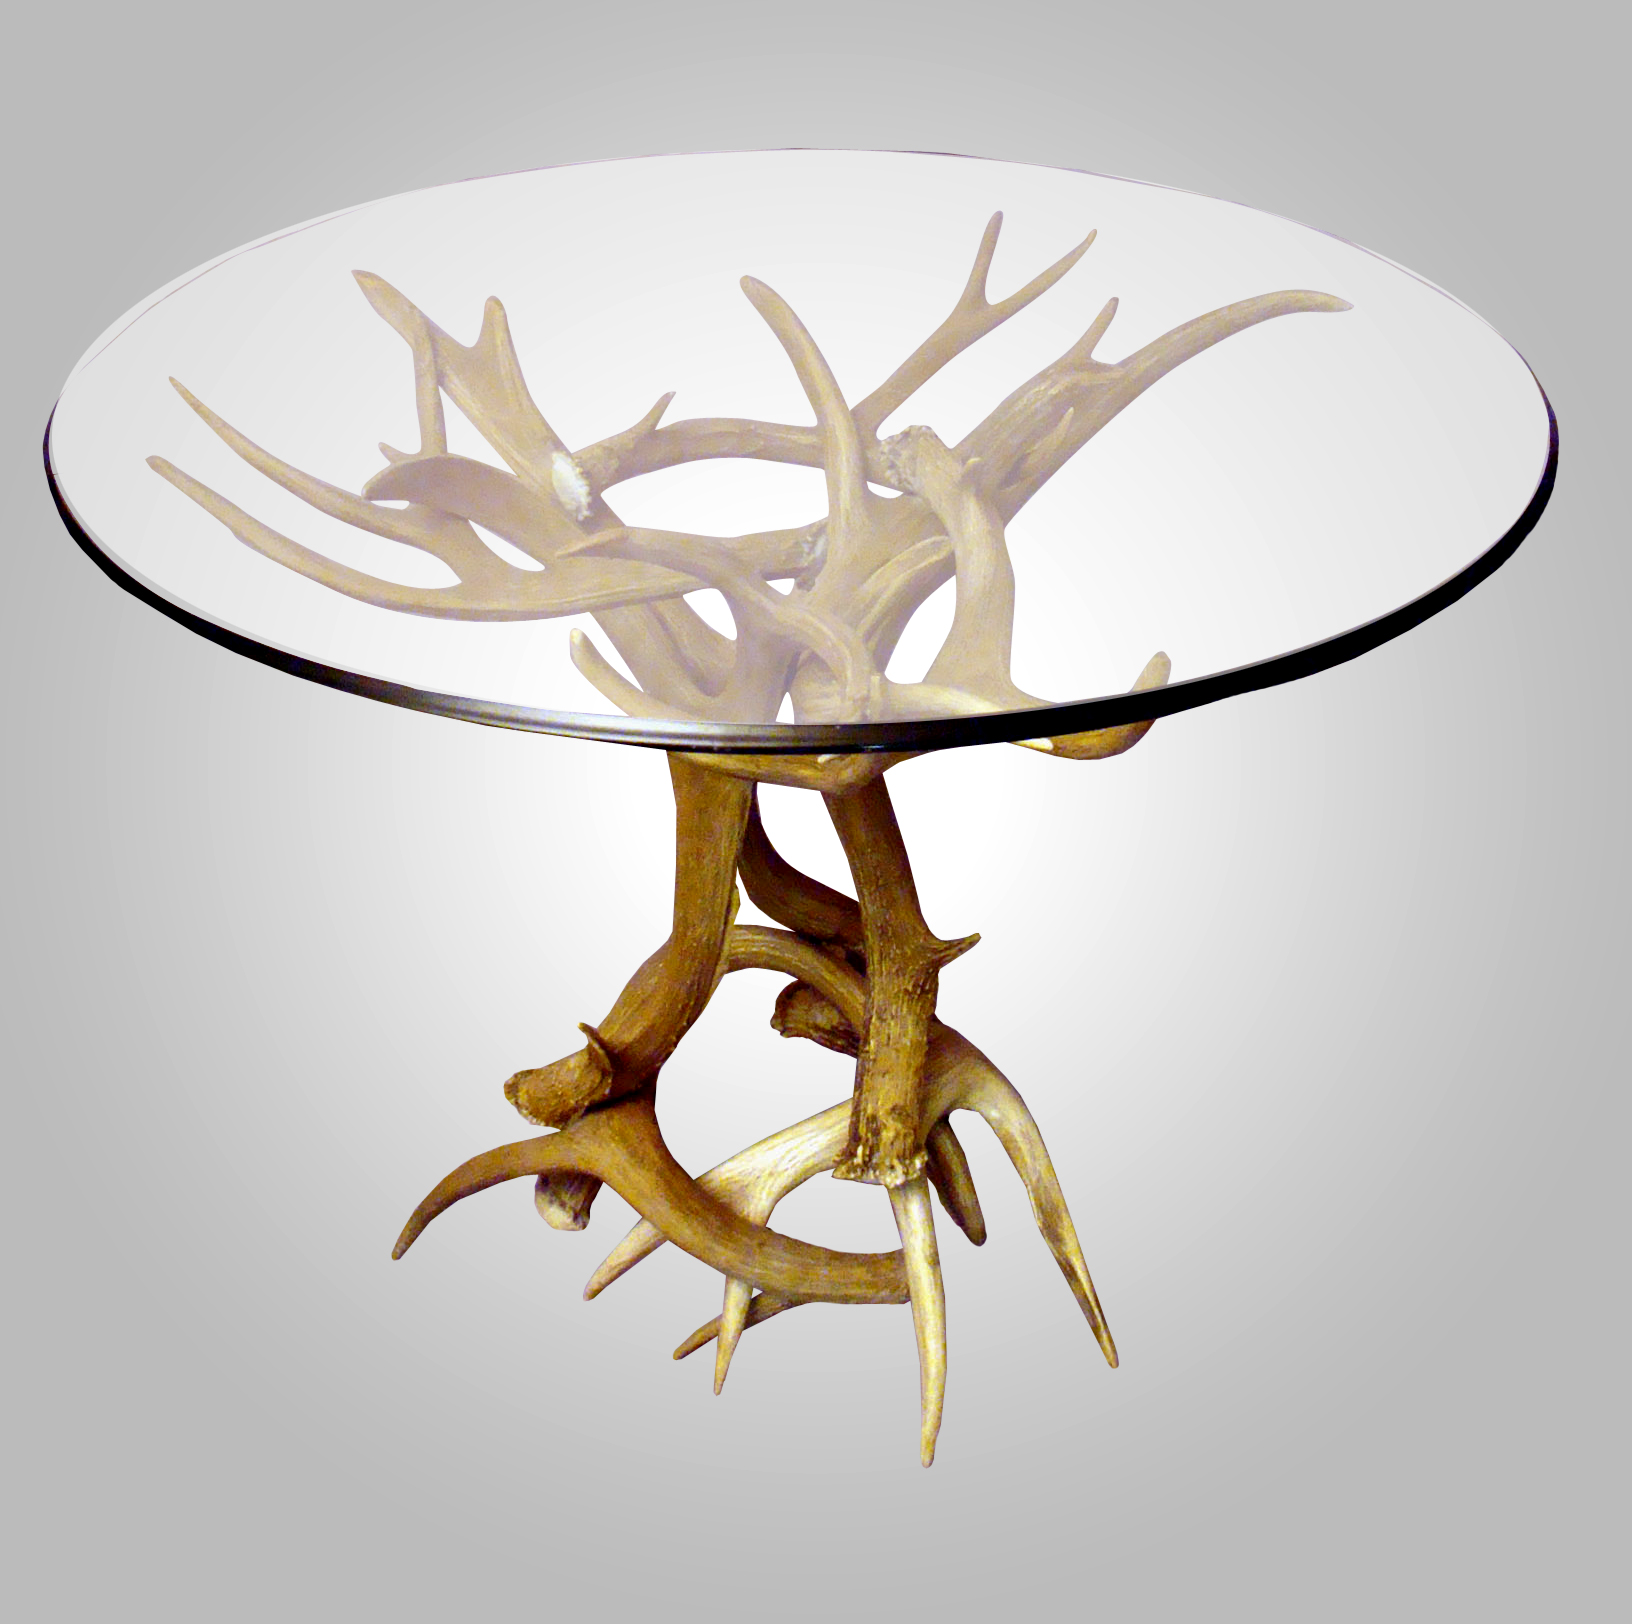 REAL ANTLER MULE DEER/WHITETAIL END TABLE, RUSTIC LIGHTING